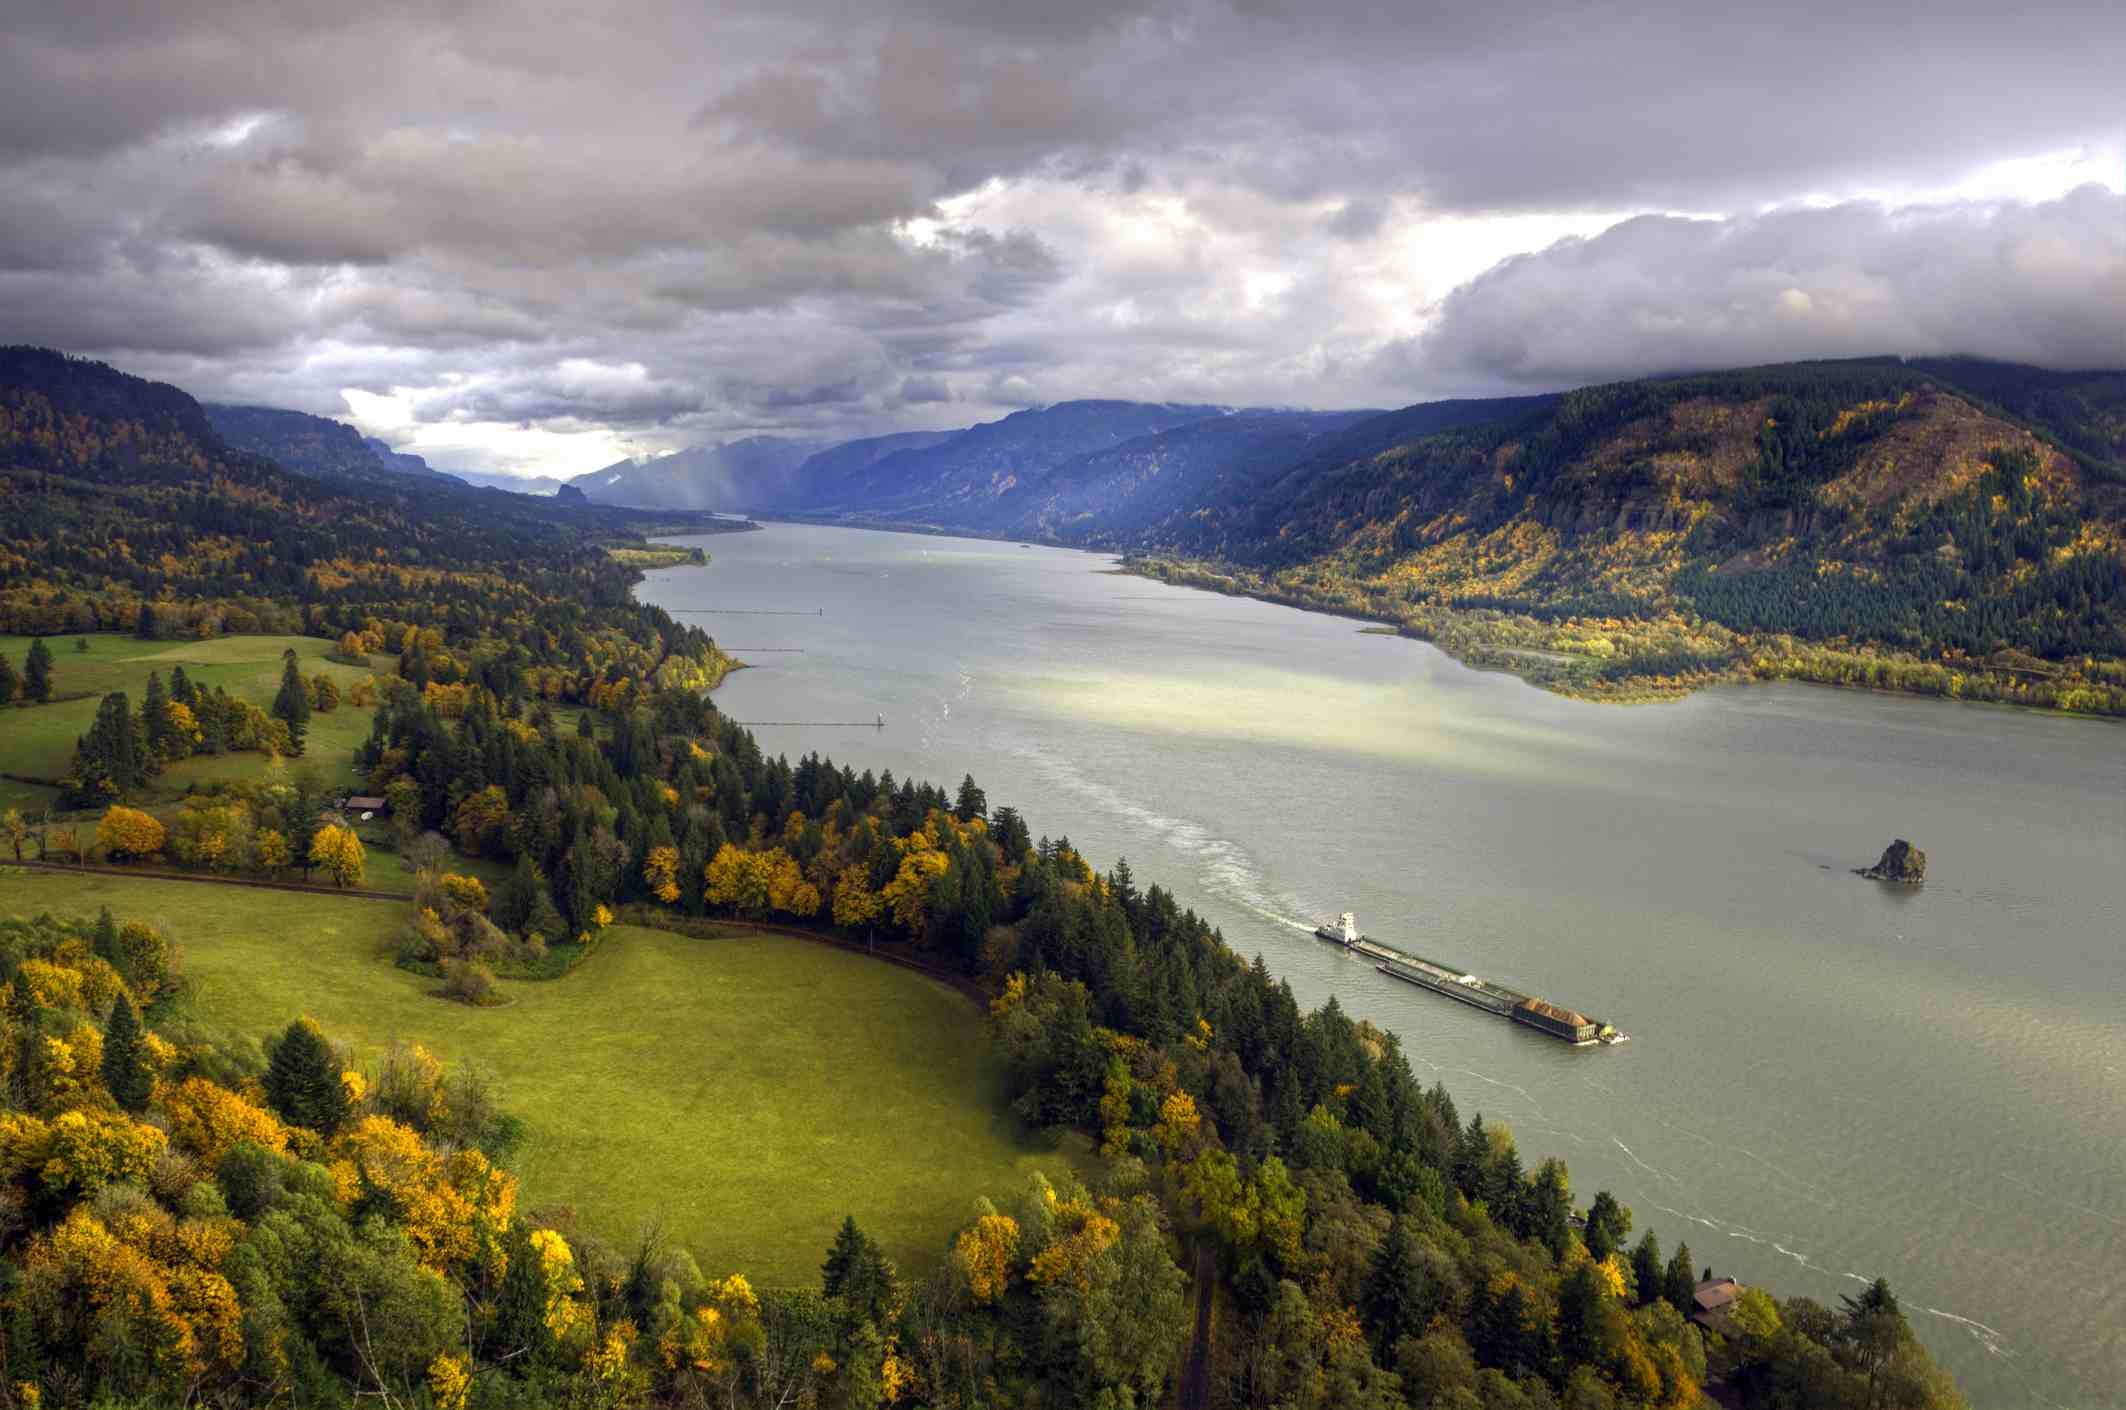 View of the Columbia River from Cape Horn, Skamania County, WA